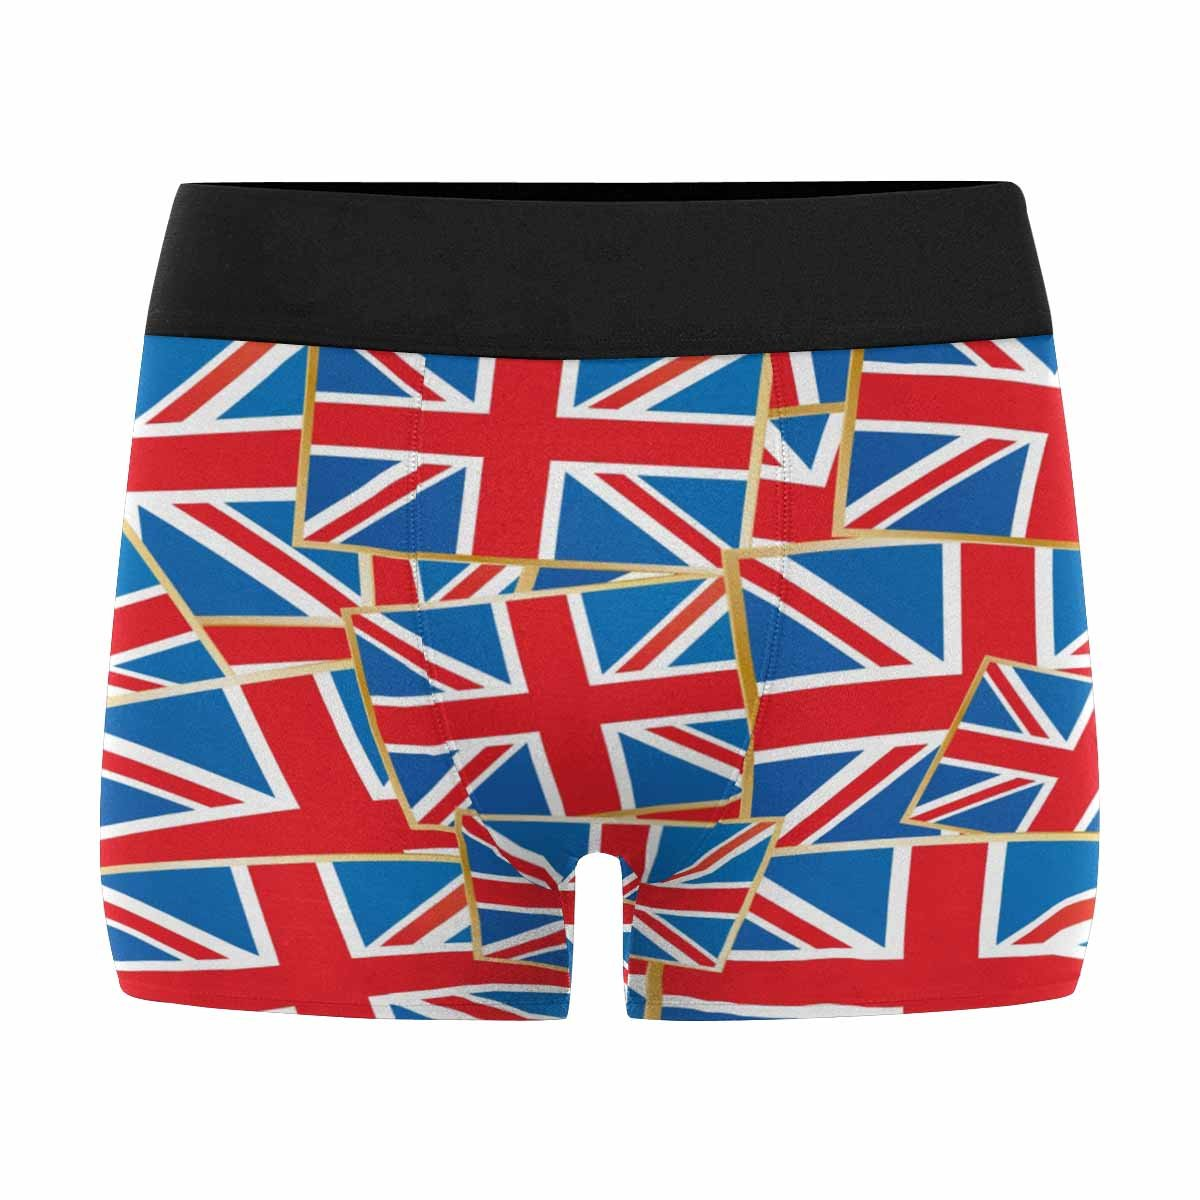 XS-3XL INTERESTPRINT Custom Mens All-Over Print Boxer Briefs Pattern of Great Britain Flags with Clipping Path